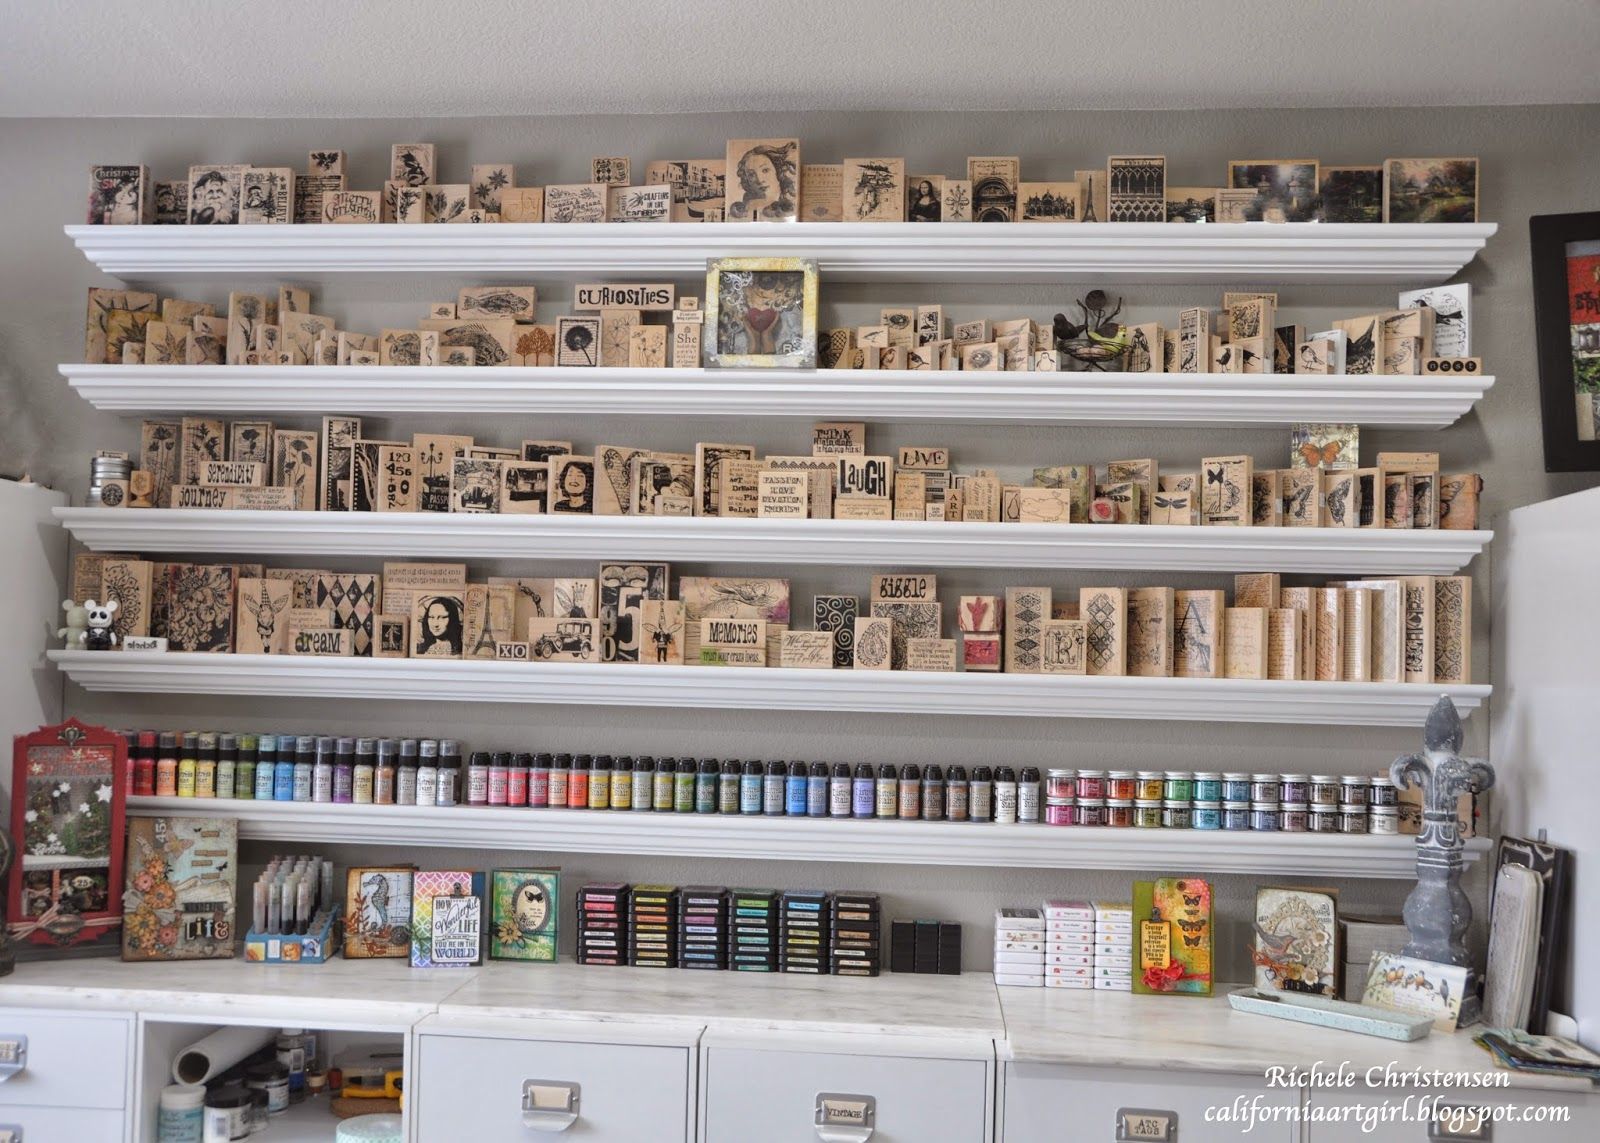 richele christensen: craft storage ideas guest blogger!